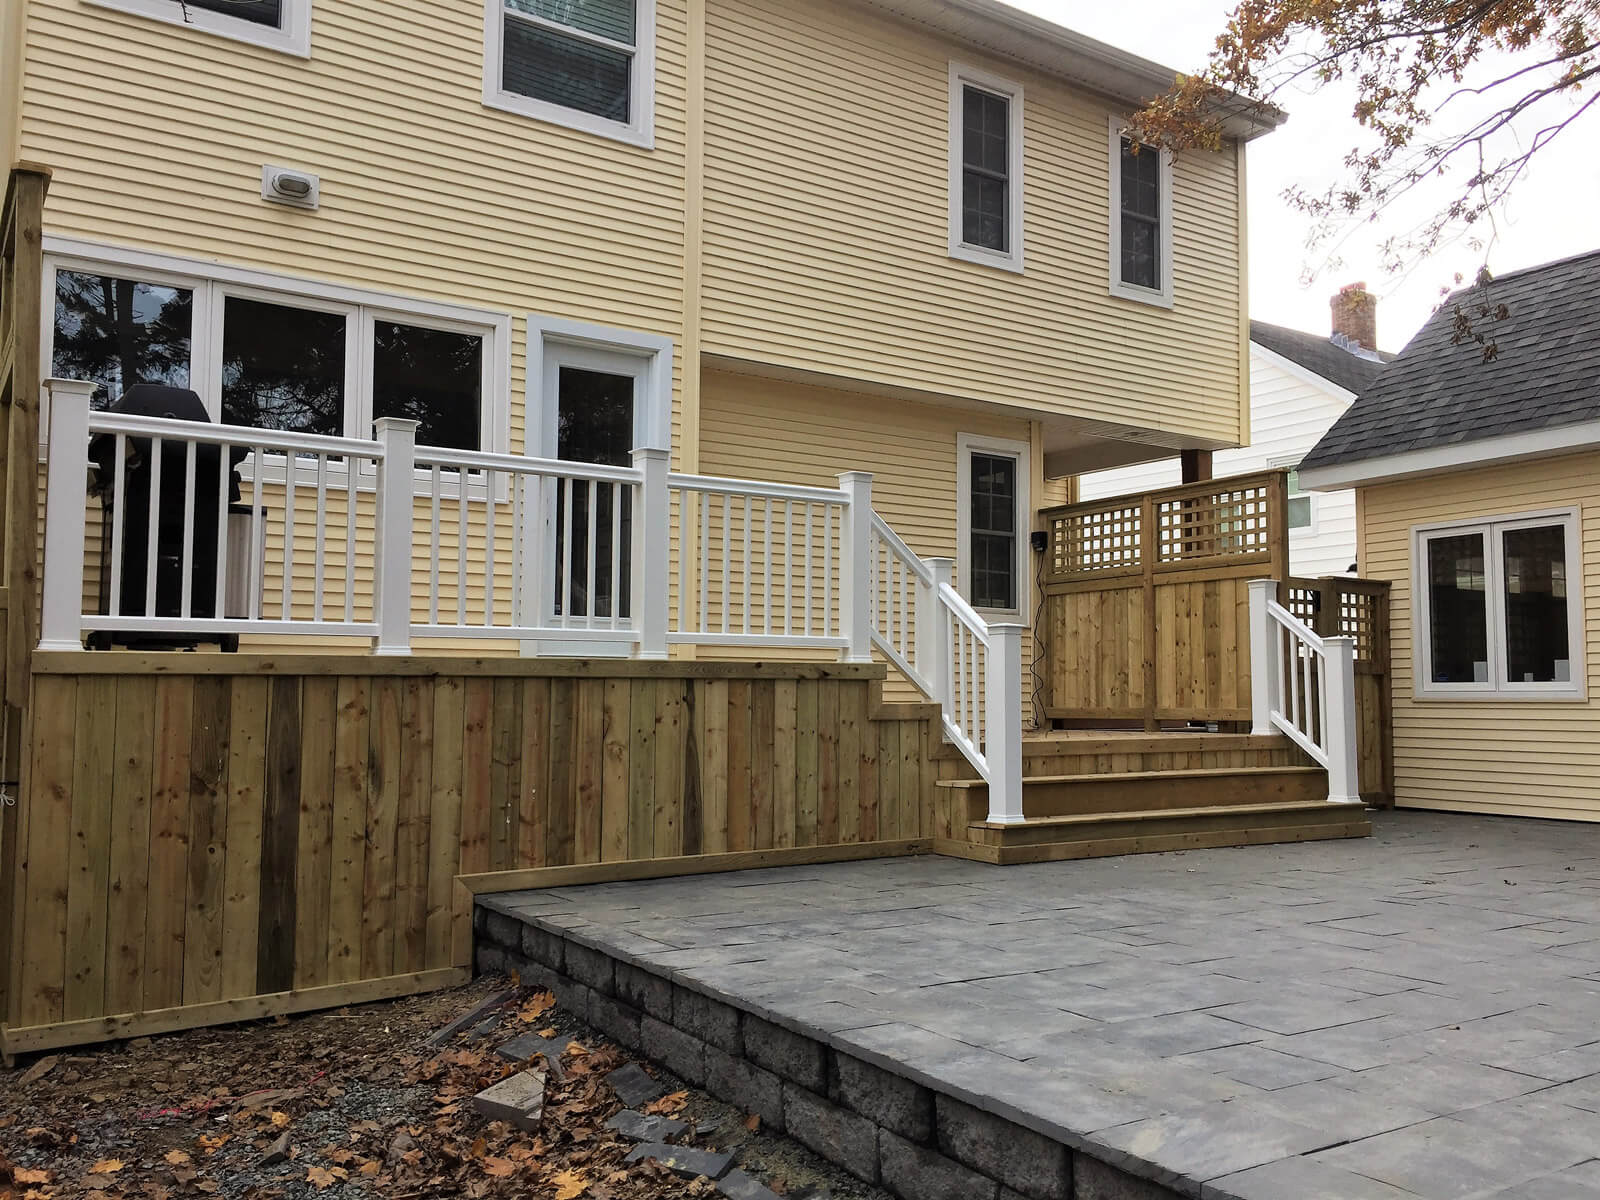 Outdoor wooden deck and hardscaped patio